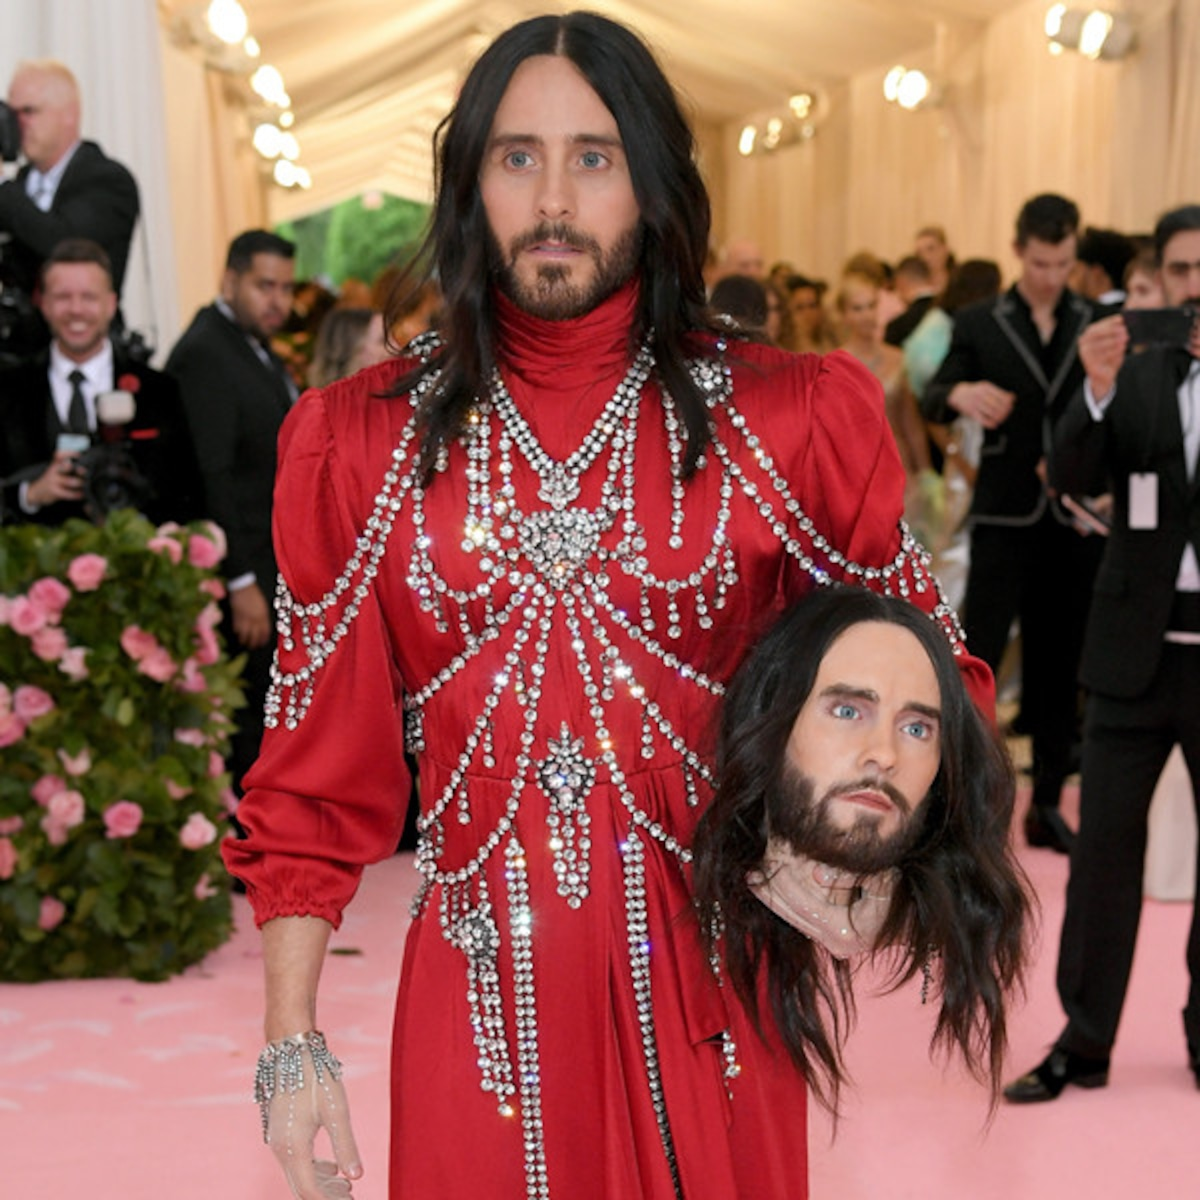 Met Gala Fashion 2020.2020 Met Gala Theme Revealed Relive The Best Looks E News